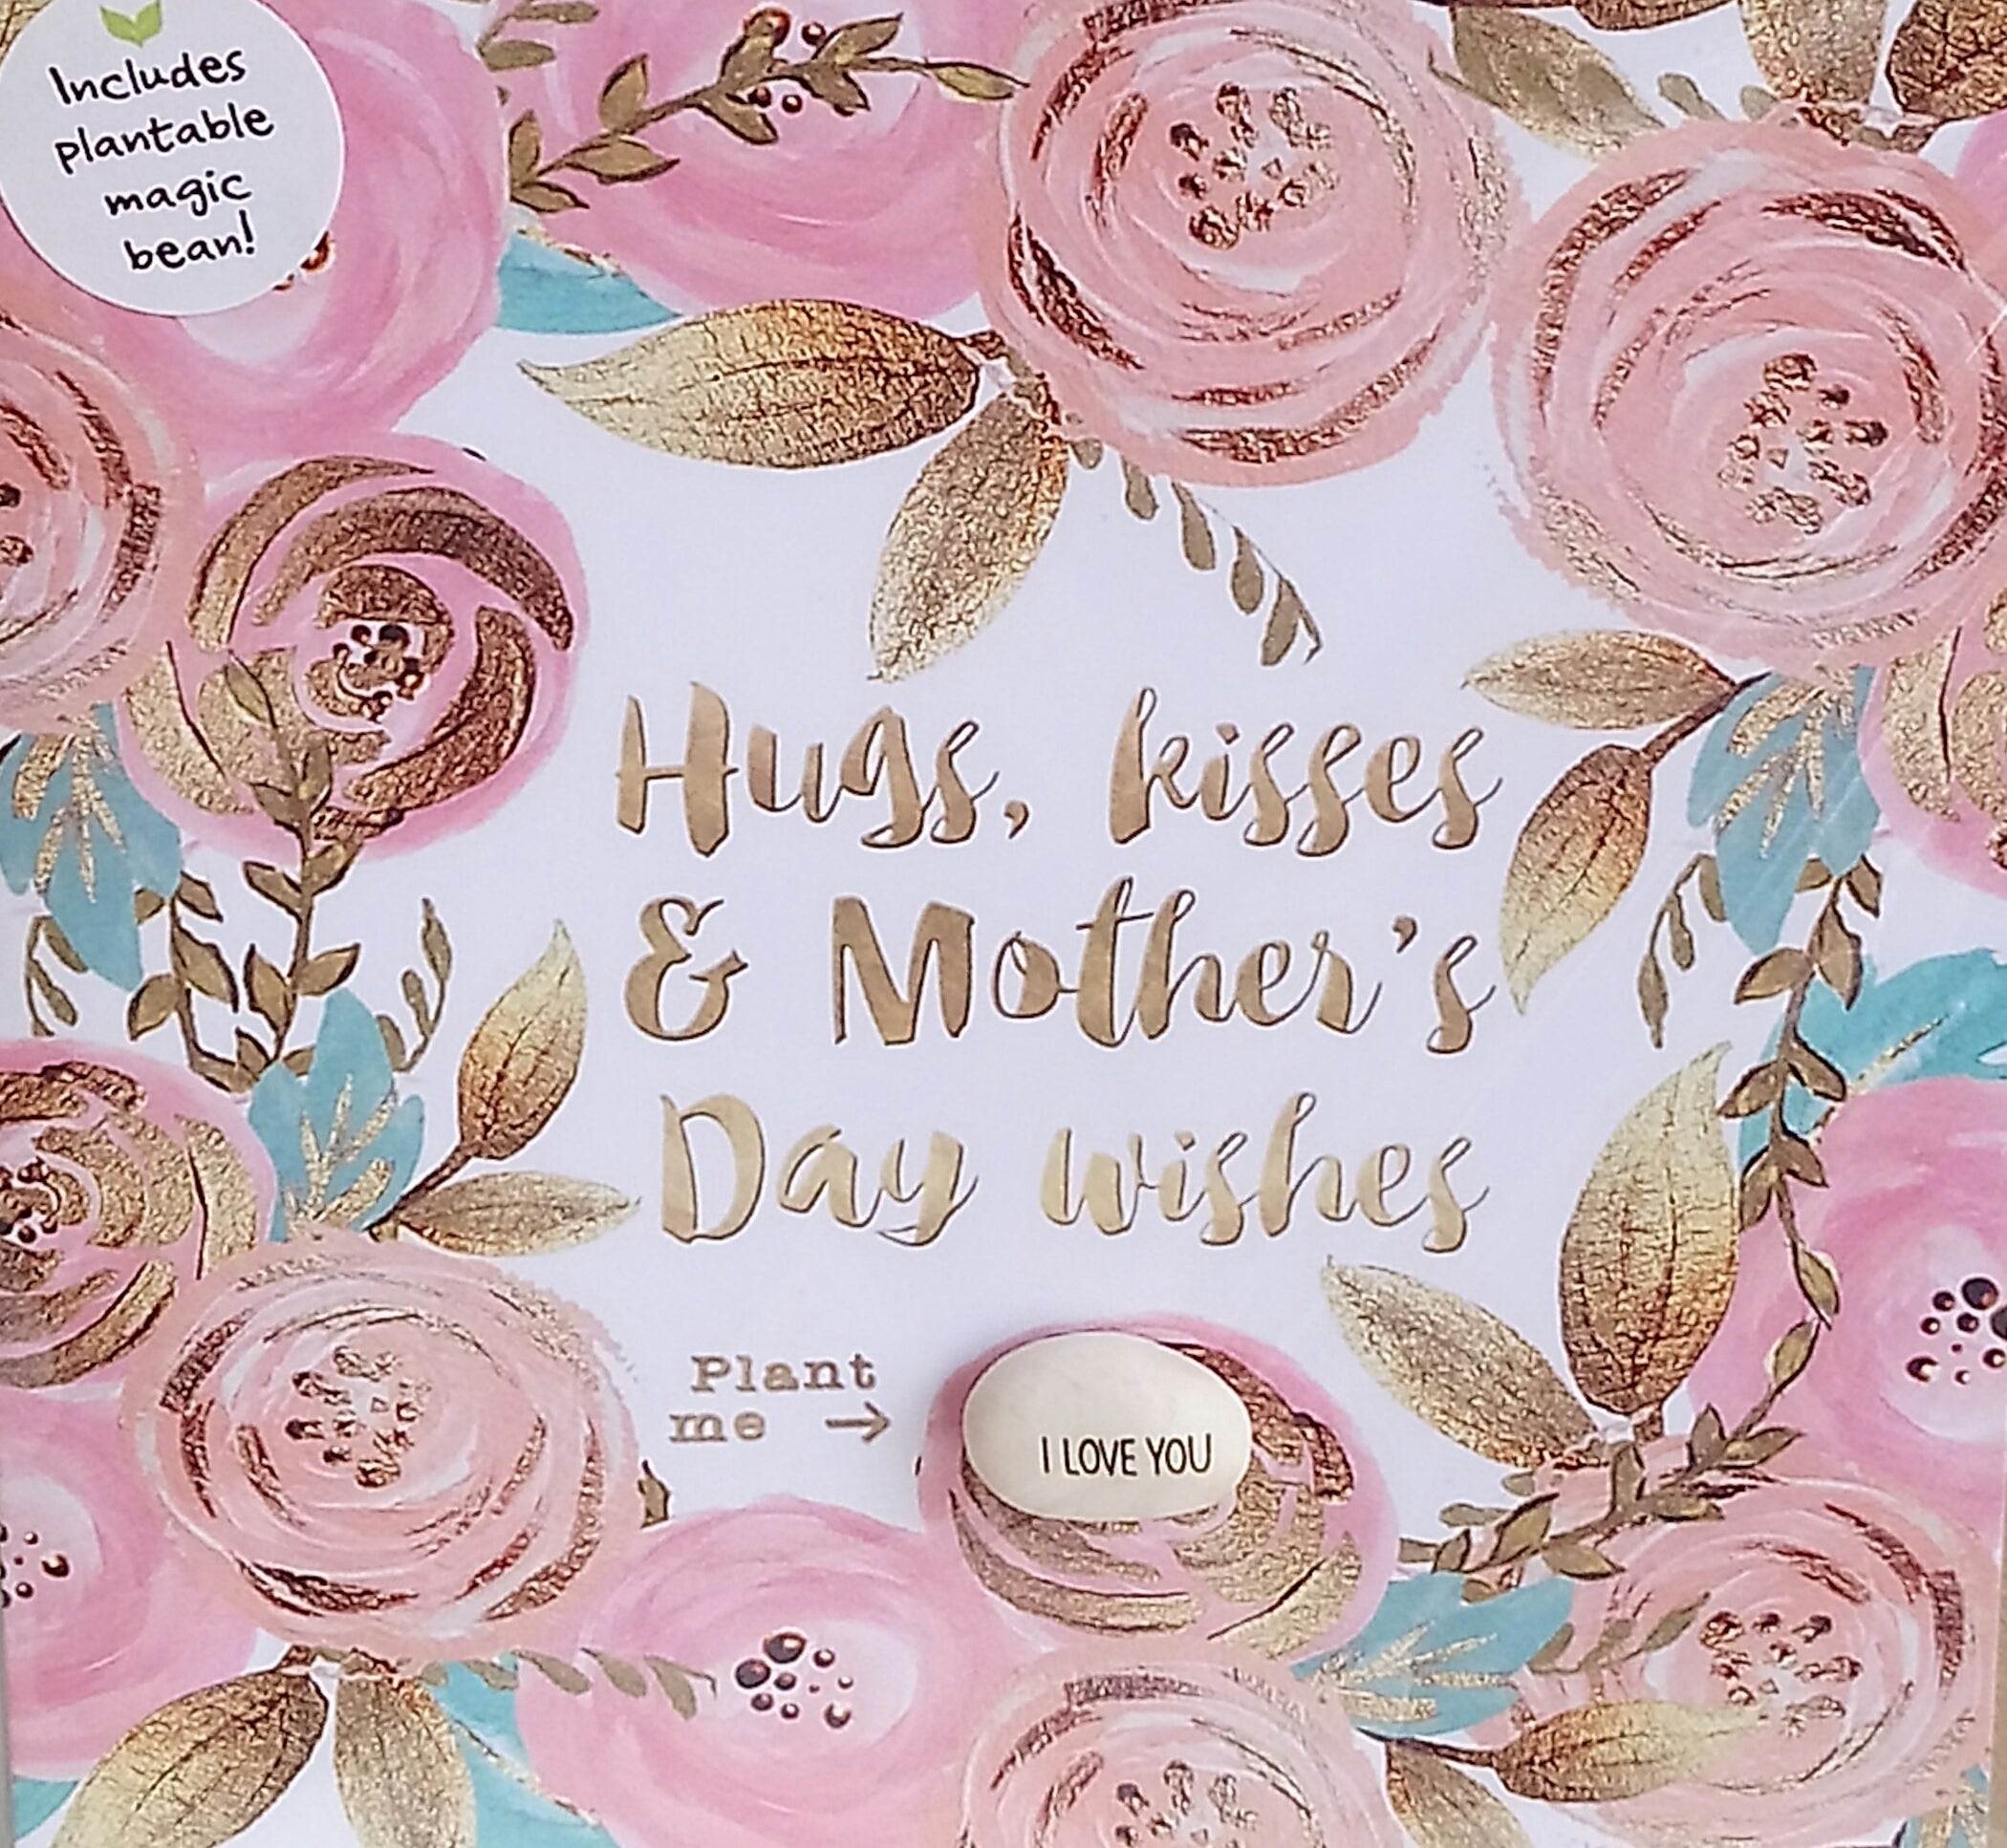 'Hugs & Kisses & Mother's Day Wishes' Magic Bean Card by Lucy & Lolly